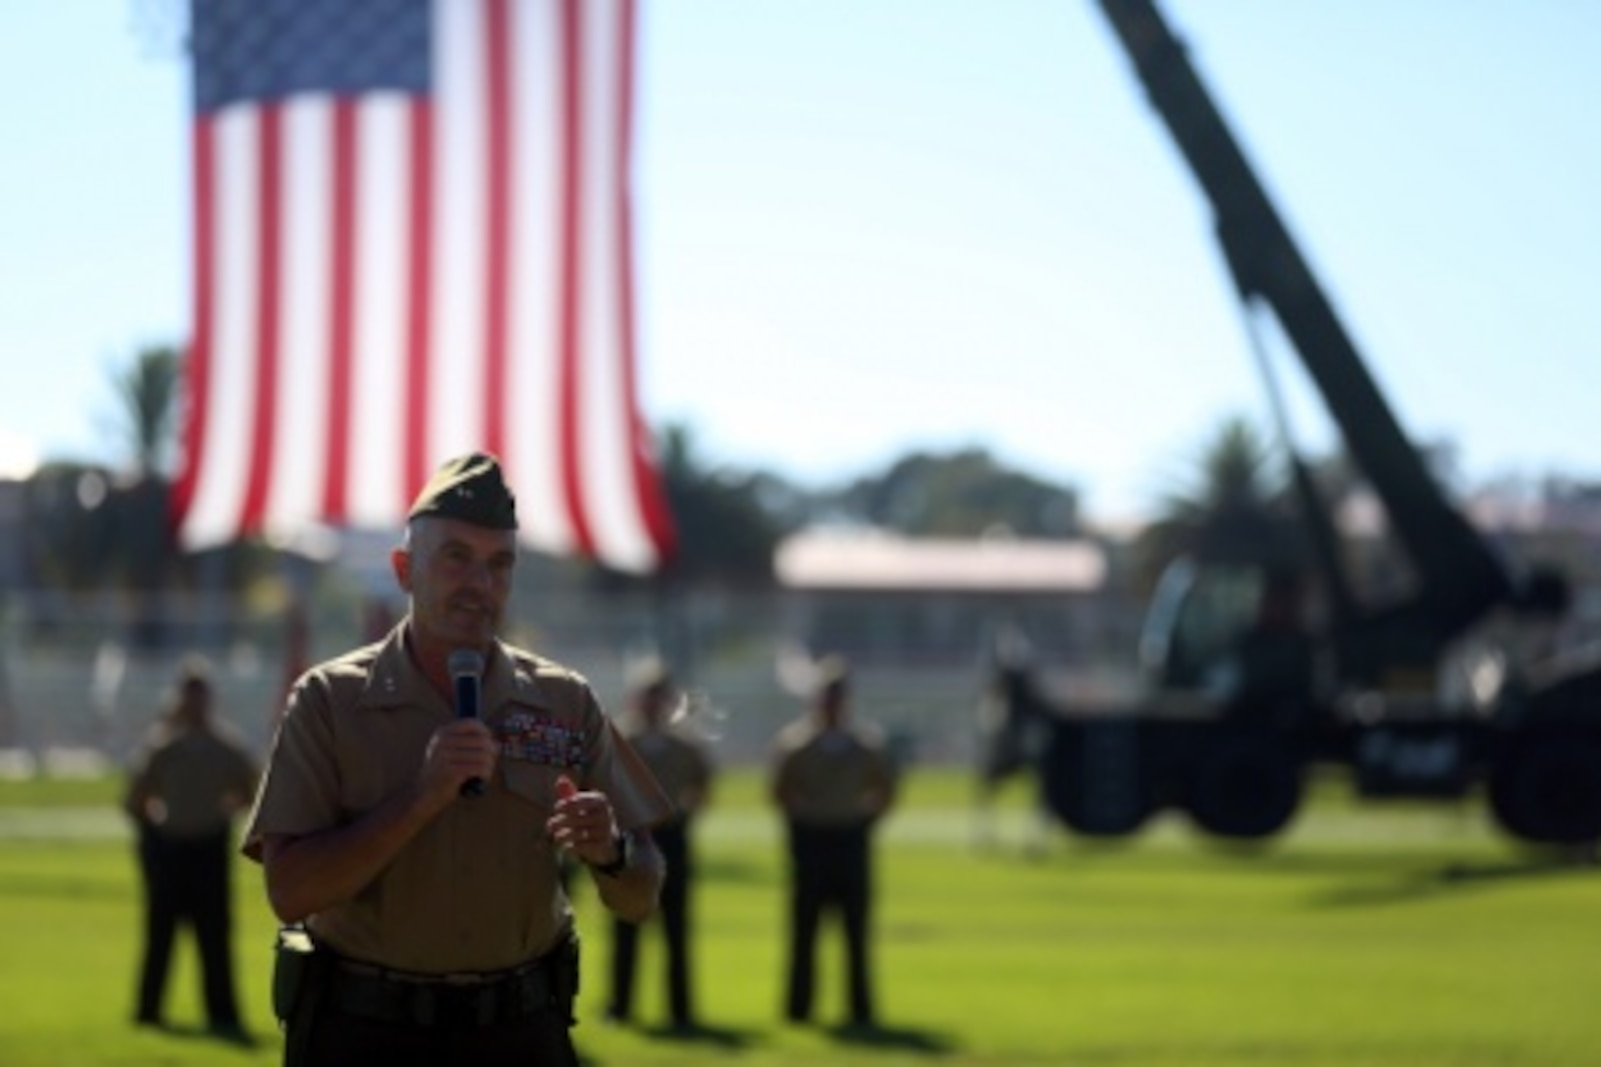 U.S. Marine Maj. General Vincent A. Coglinese, 1st Marine Logistics Group (1st MLG), speaks to Marines, Sailors, family, and friends who attended the 1st Marine Logistics Group Change of Command Ceremony aboard Camp Pendleton, Calif., July 24, 2015. The Change of Command for 1st MLG showcased the passing of command from Maj. Gen. Vincent A. Coglinese to Brig. Gen. David a Ottignon. (U.S. Marine Corps photo by Cpl. Rodion Zabolotniy/Released)